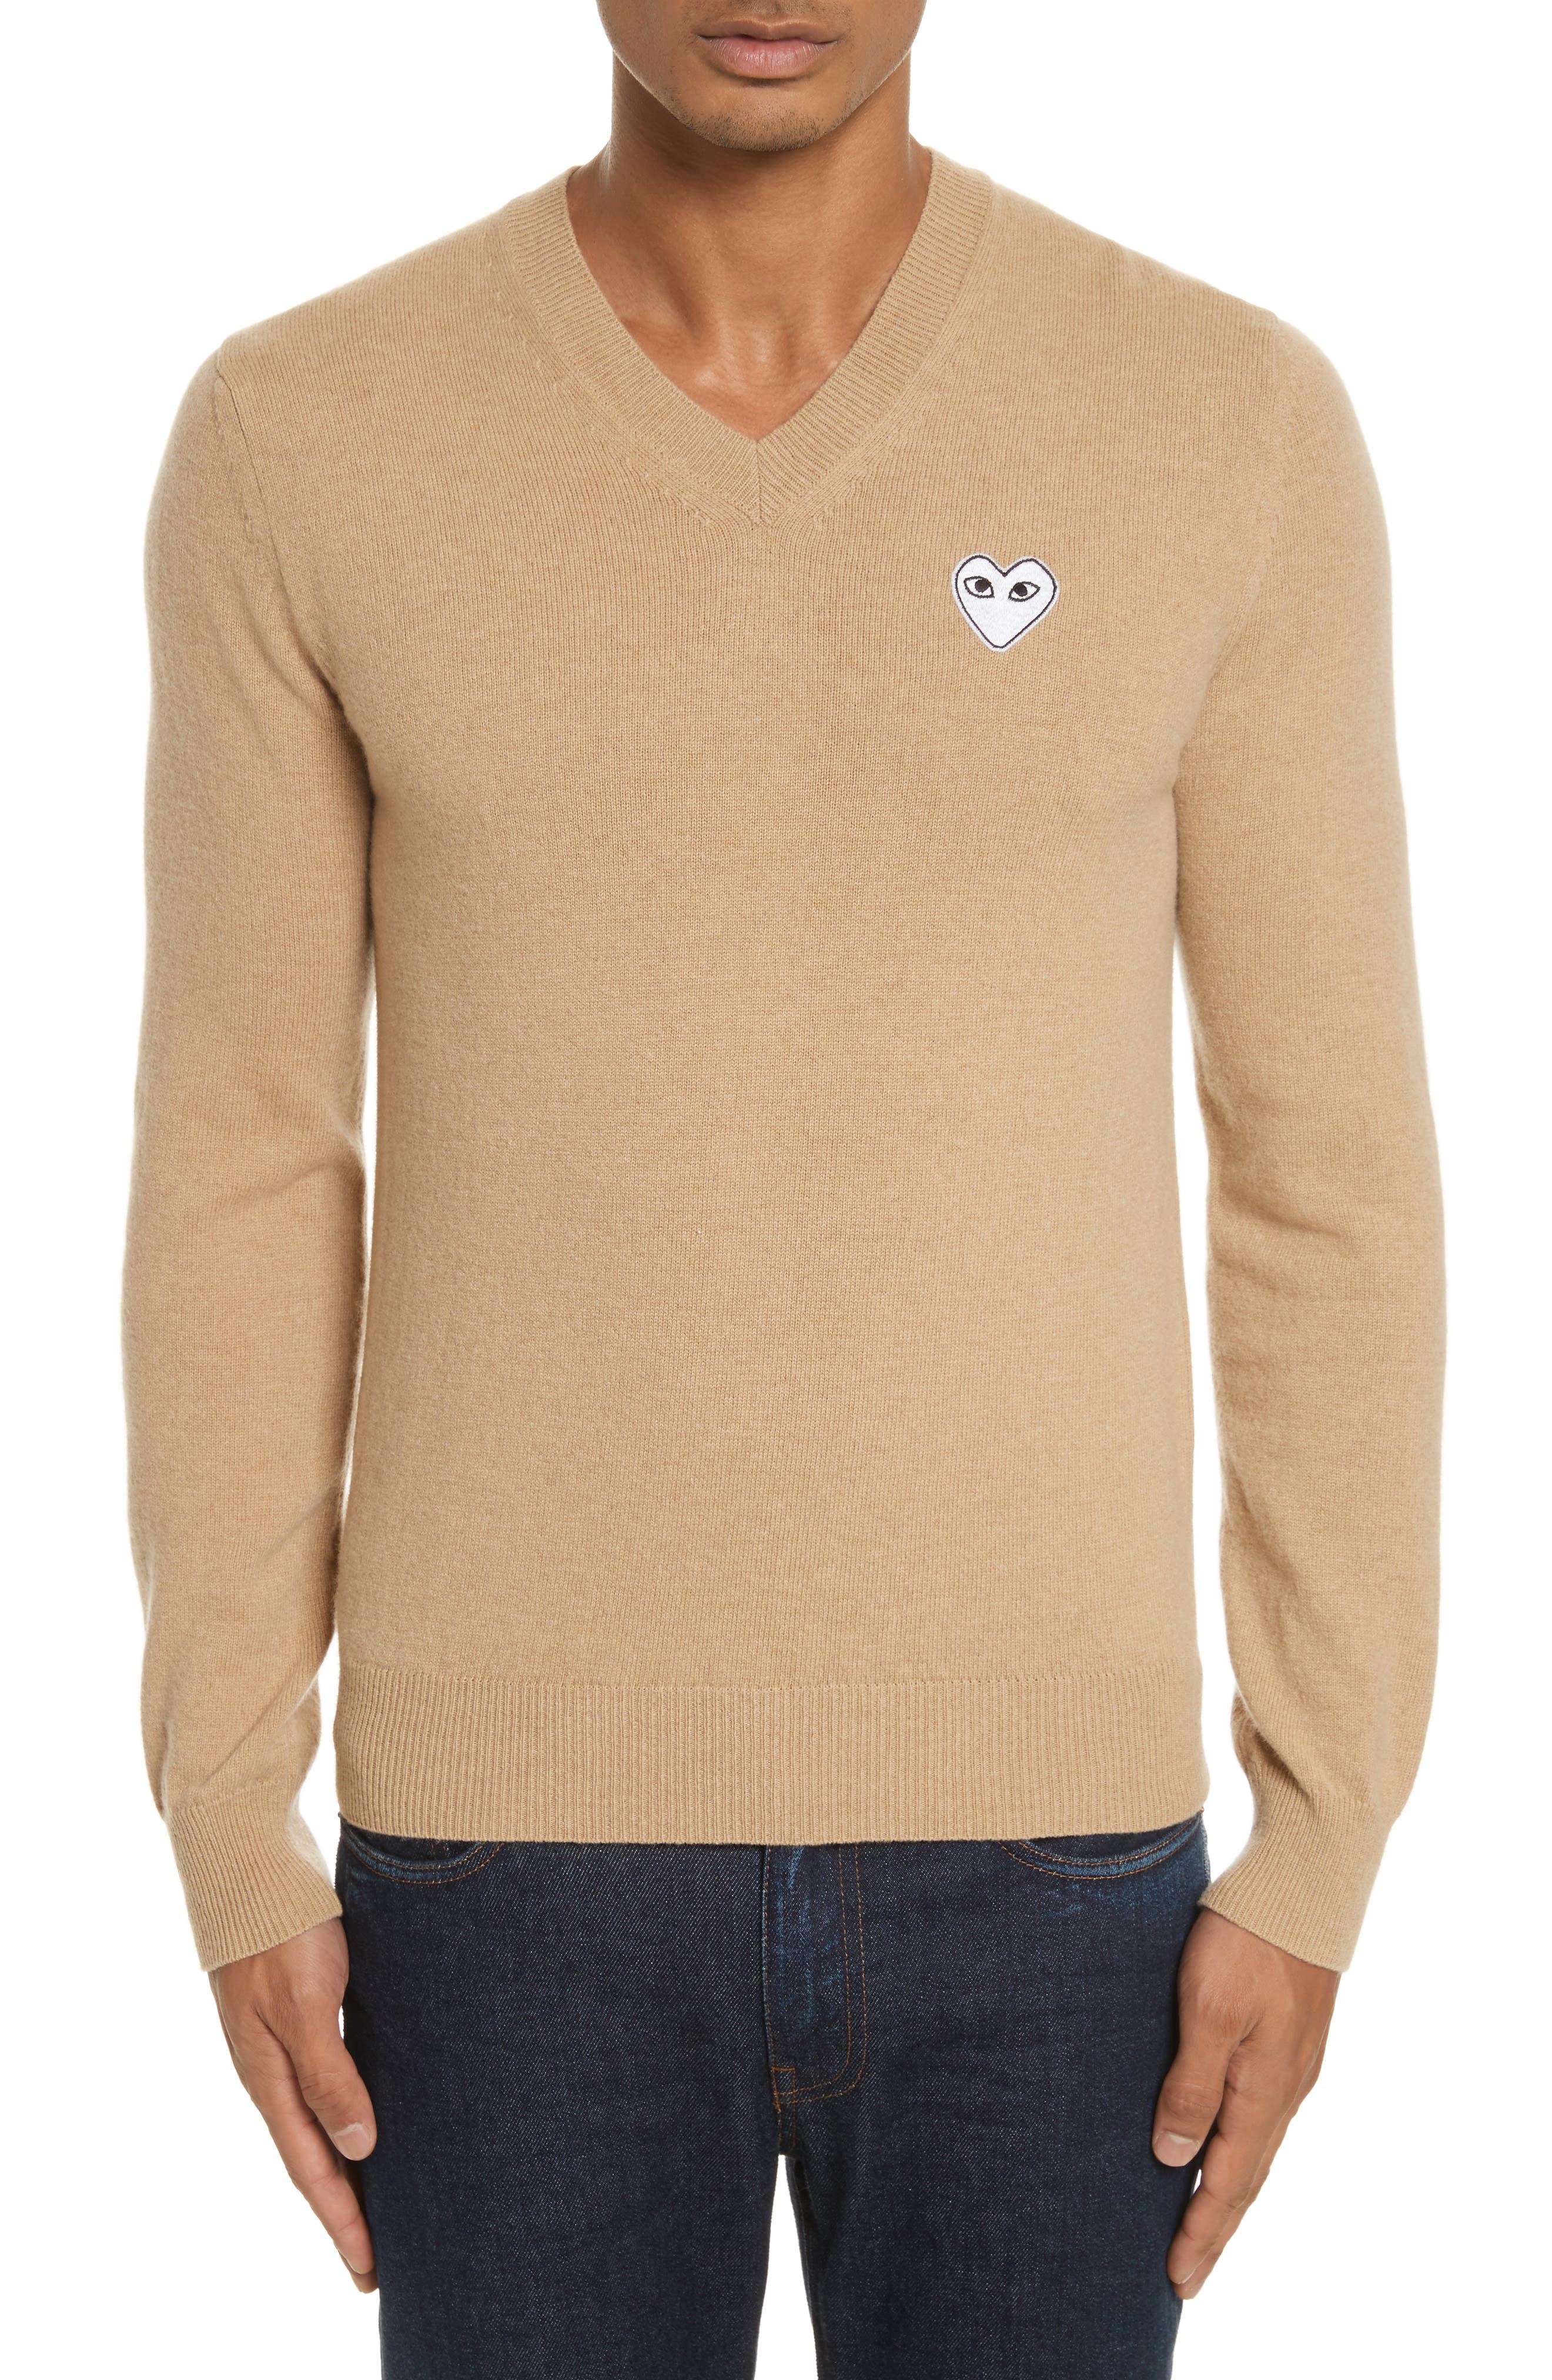 Comme des Garçons PLAY White Heart Wool V-Neck Sweater,                         Main,                         color, Camel